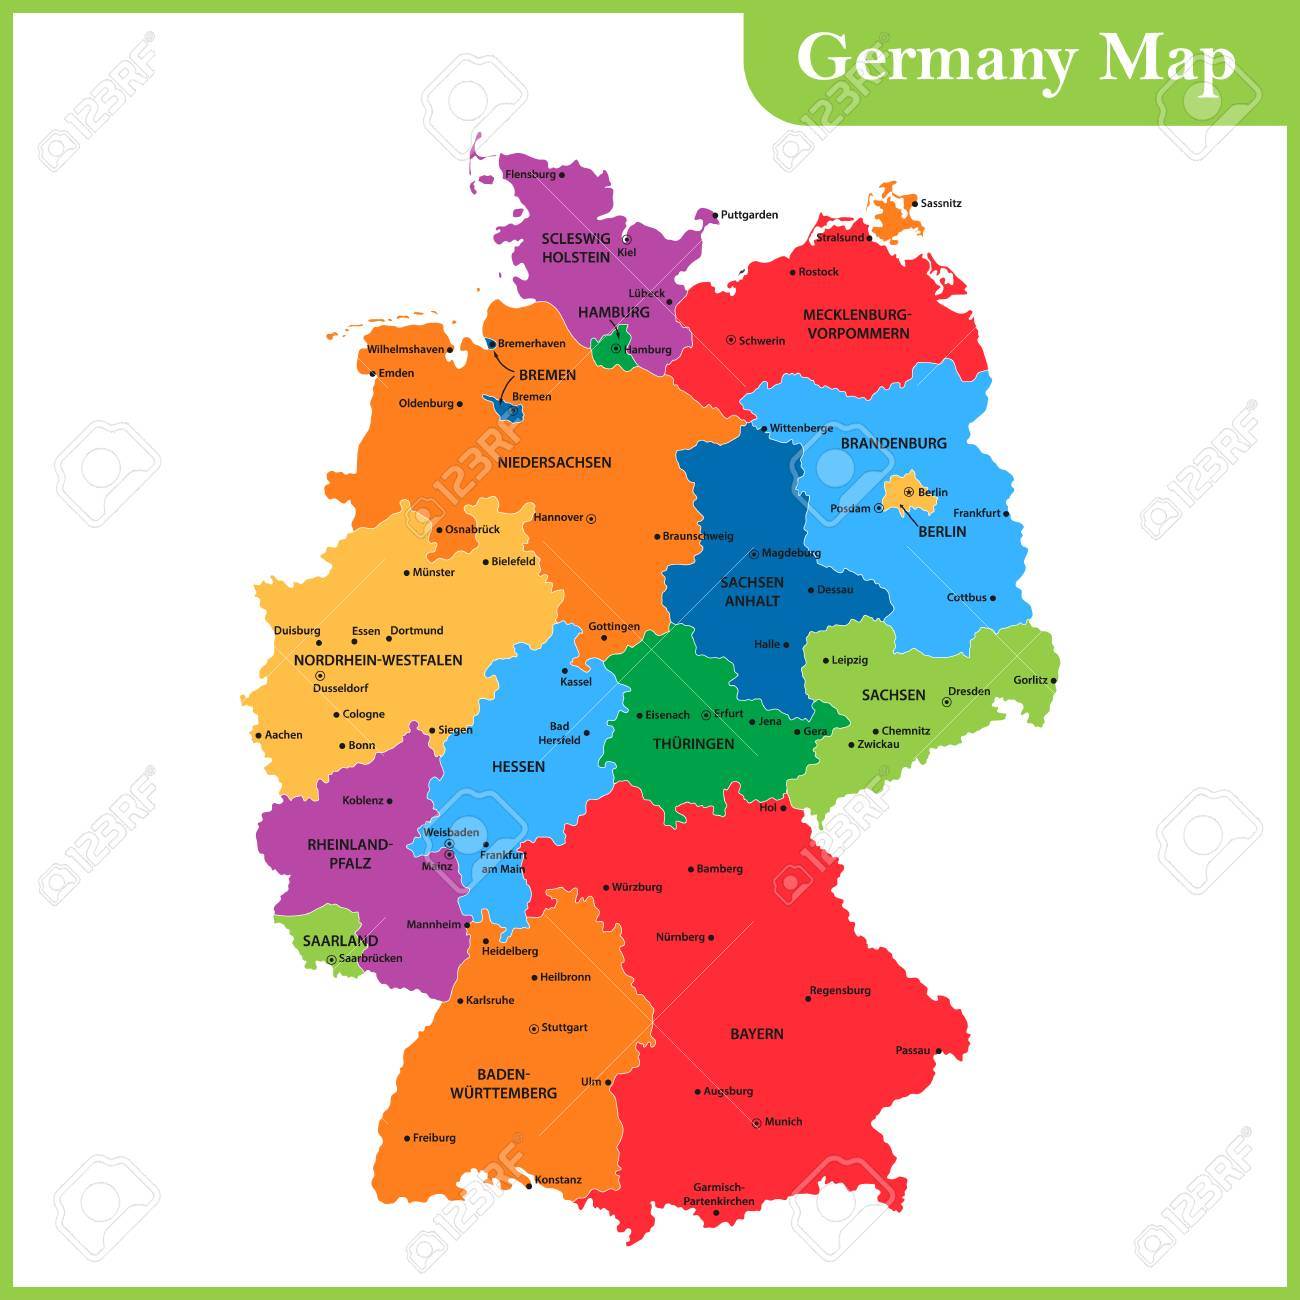 Map Of Germany Regions.The Detailed Map Of The Germany With Regions Or States And Cities